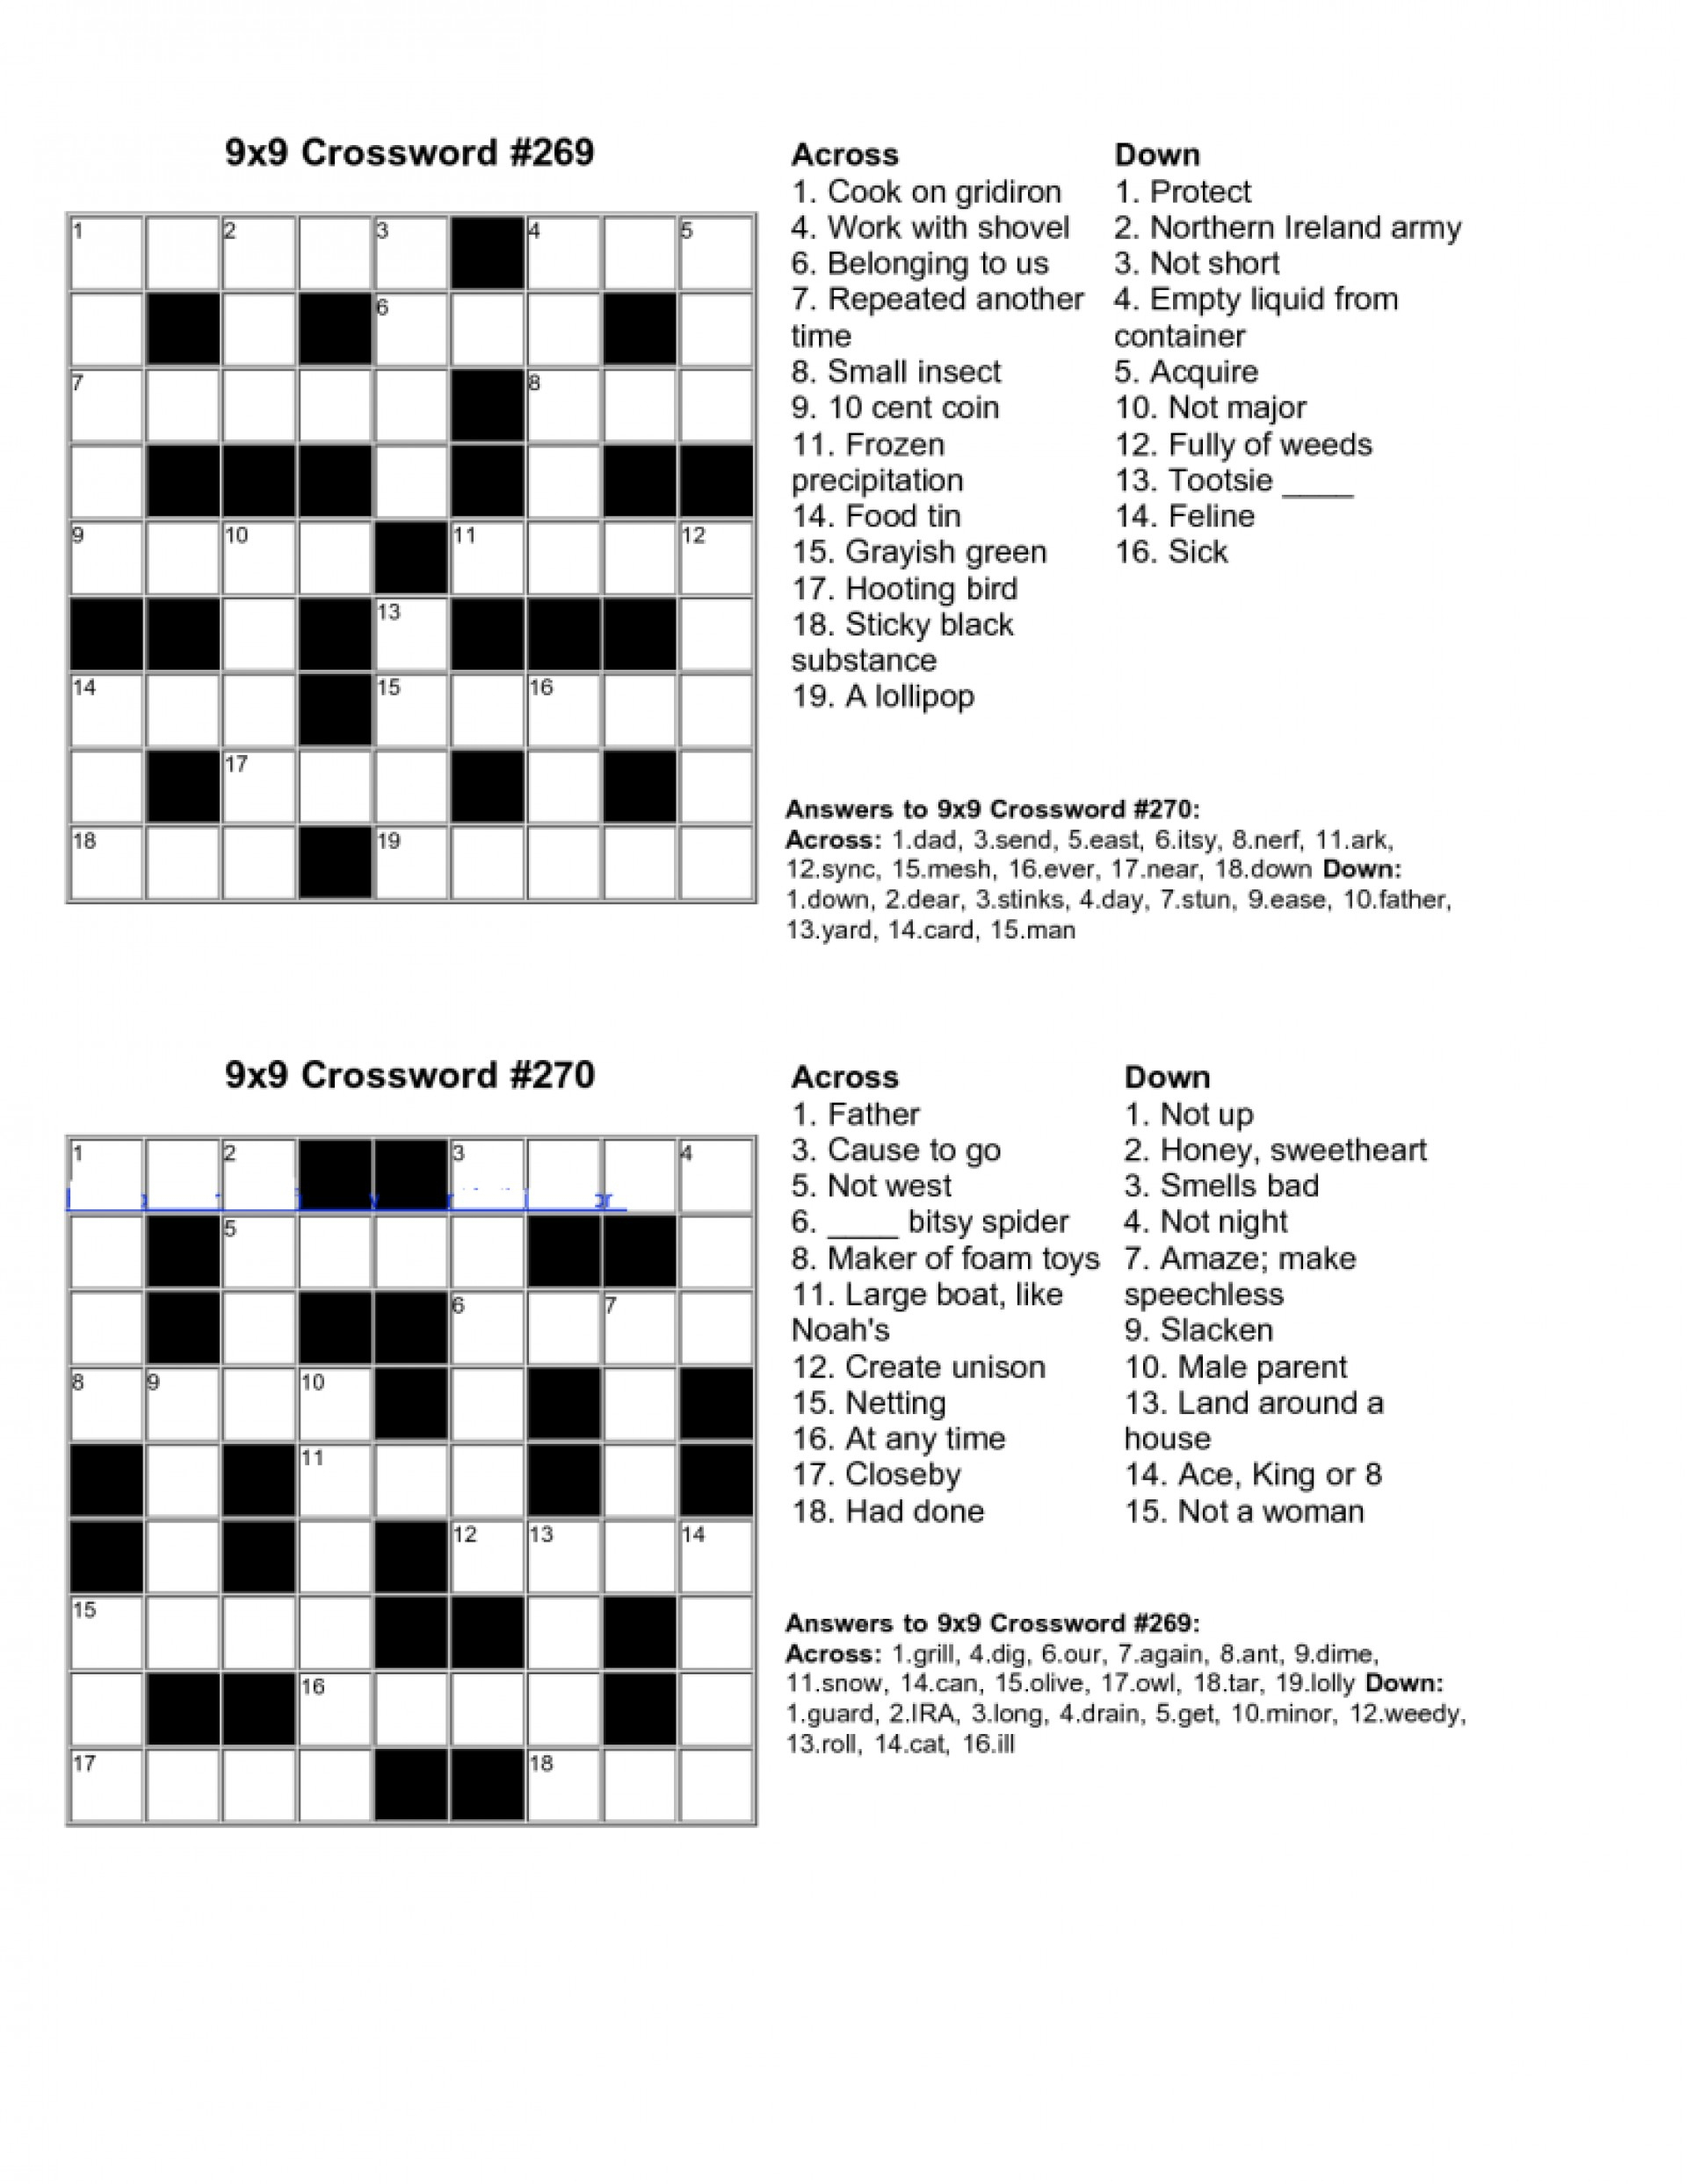 Free Crossword Puzzle Maker Printable - Stepindance.fr - Create A - How To Make A Crossword Puzzle Free Printable